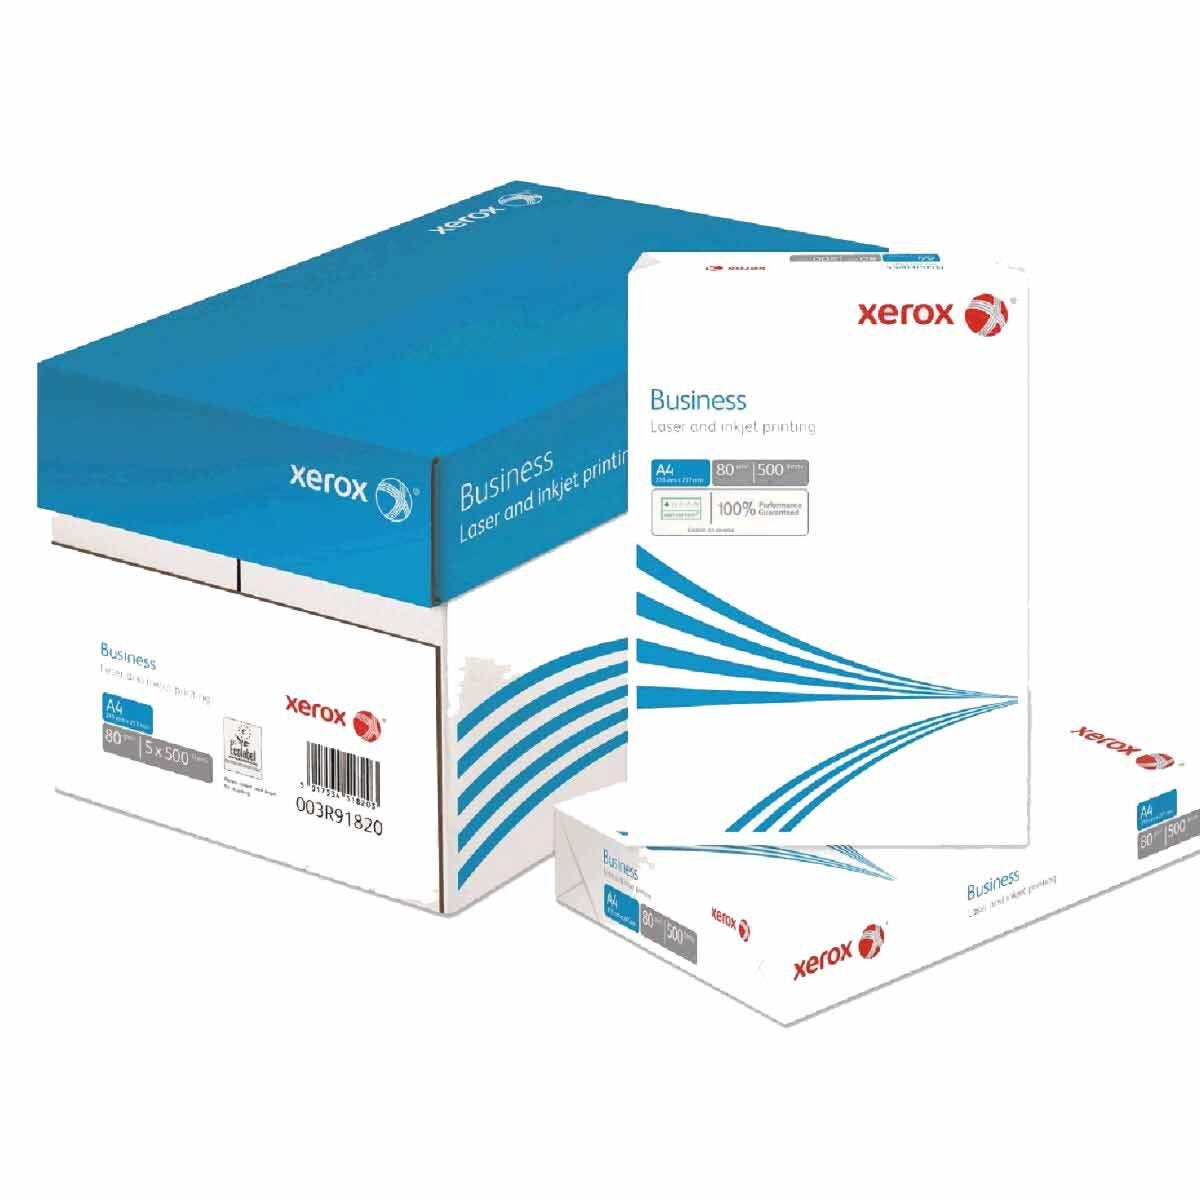 Xerox Business Paper A4 80gsm Pack of 15